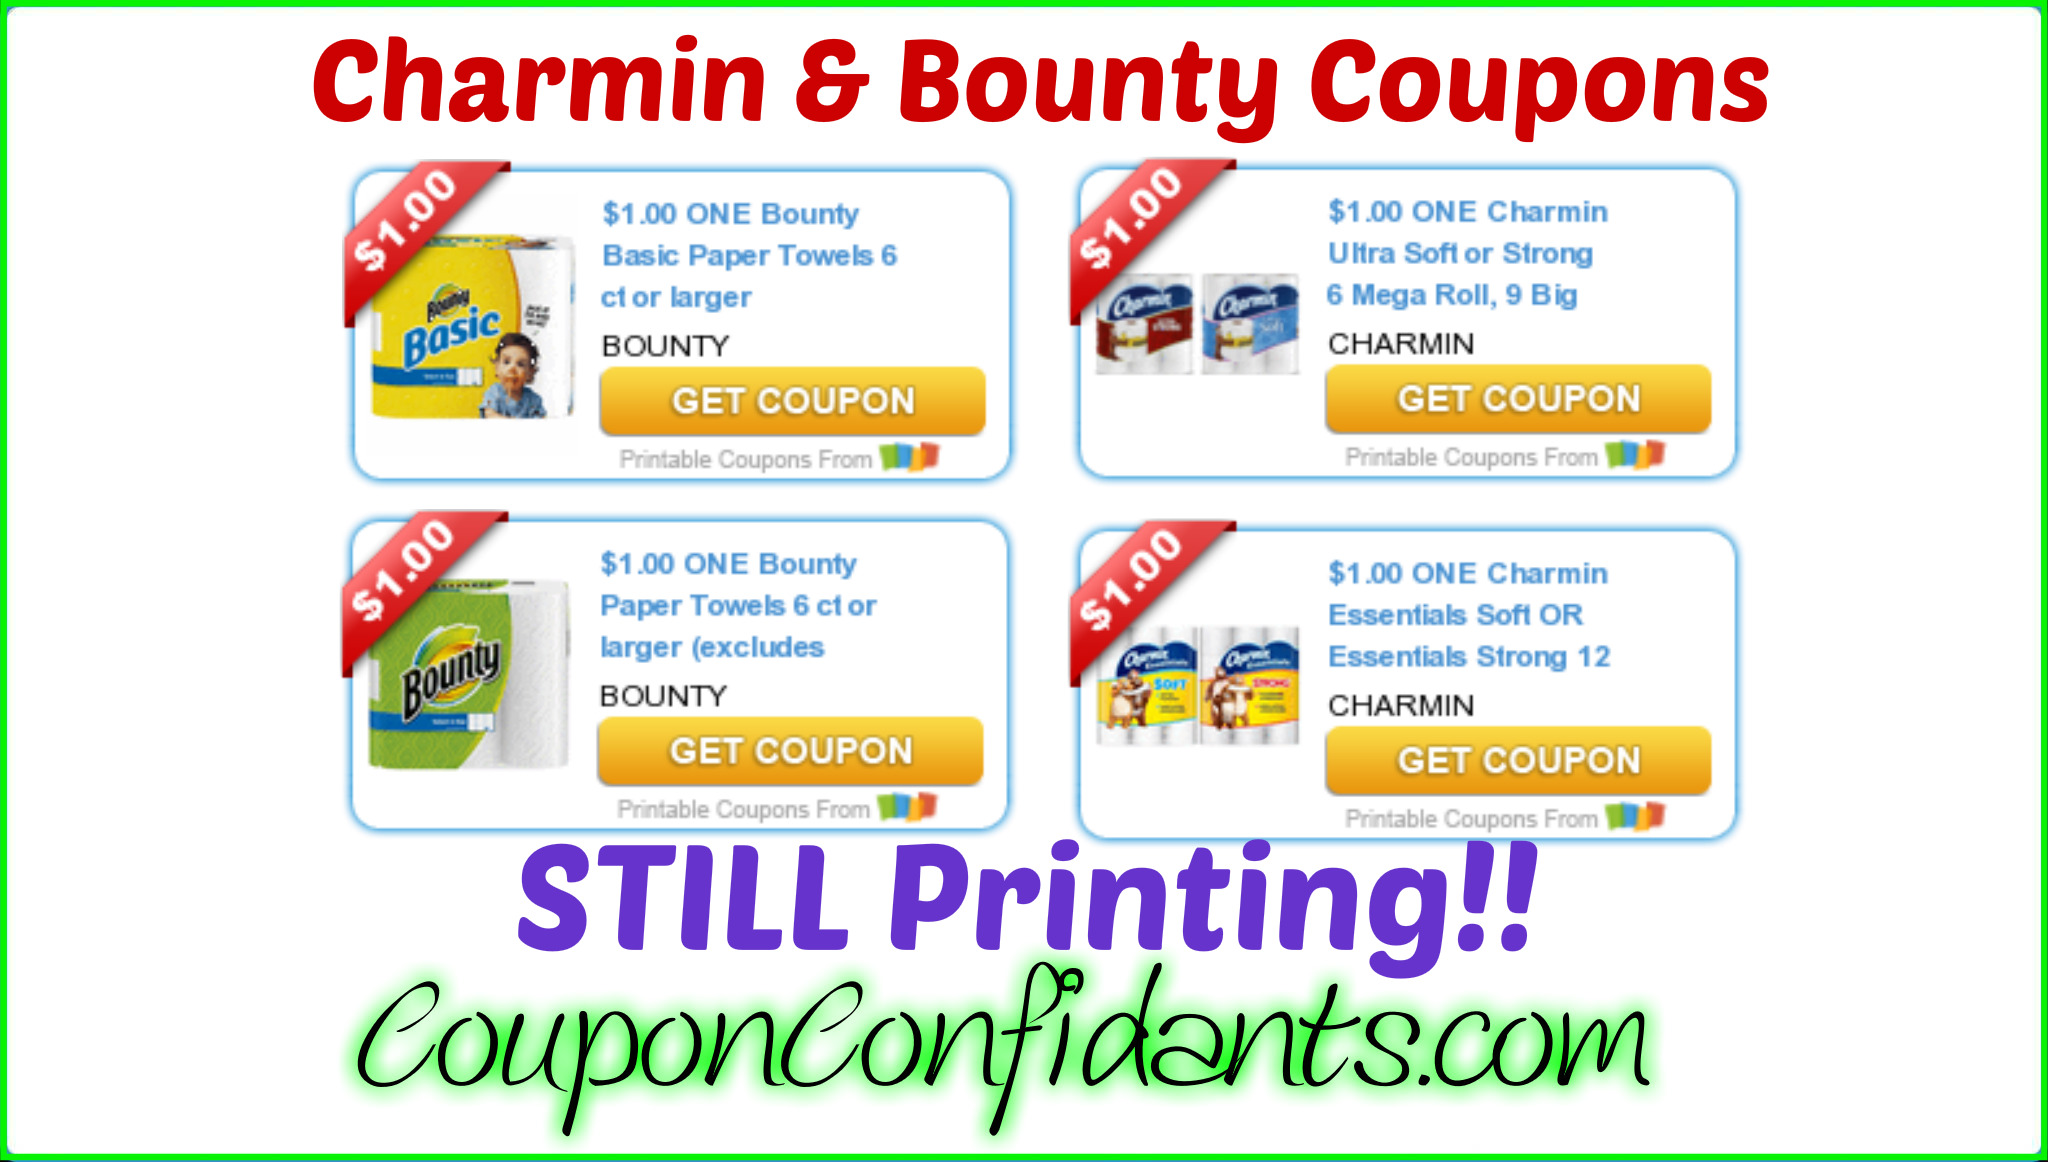 HOT Coupons STILL available!! Hurry!